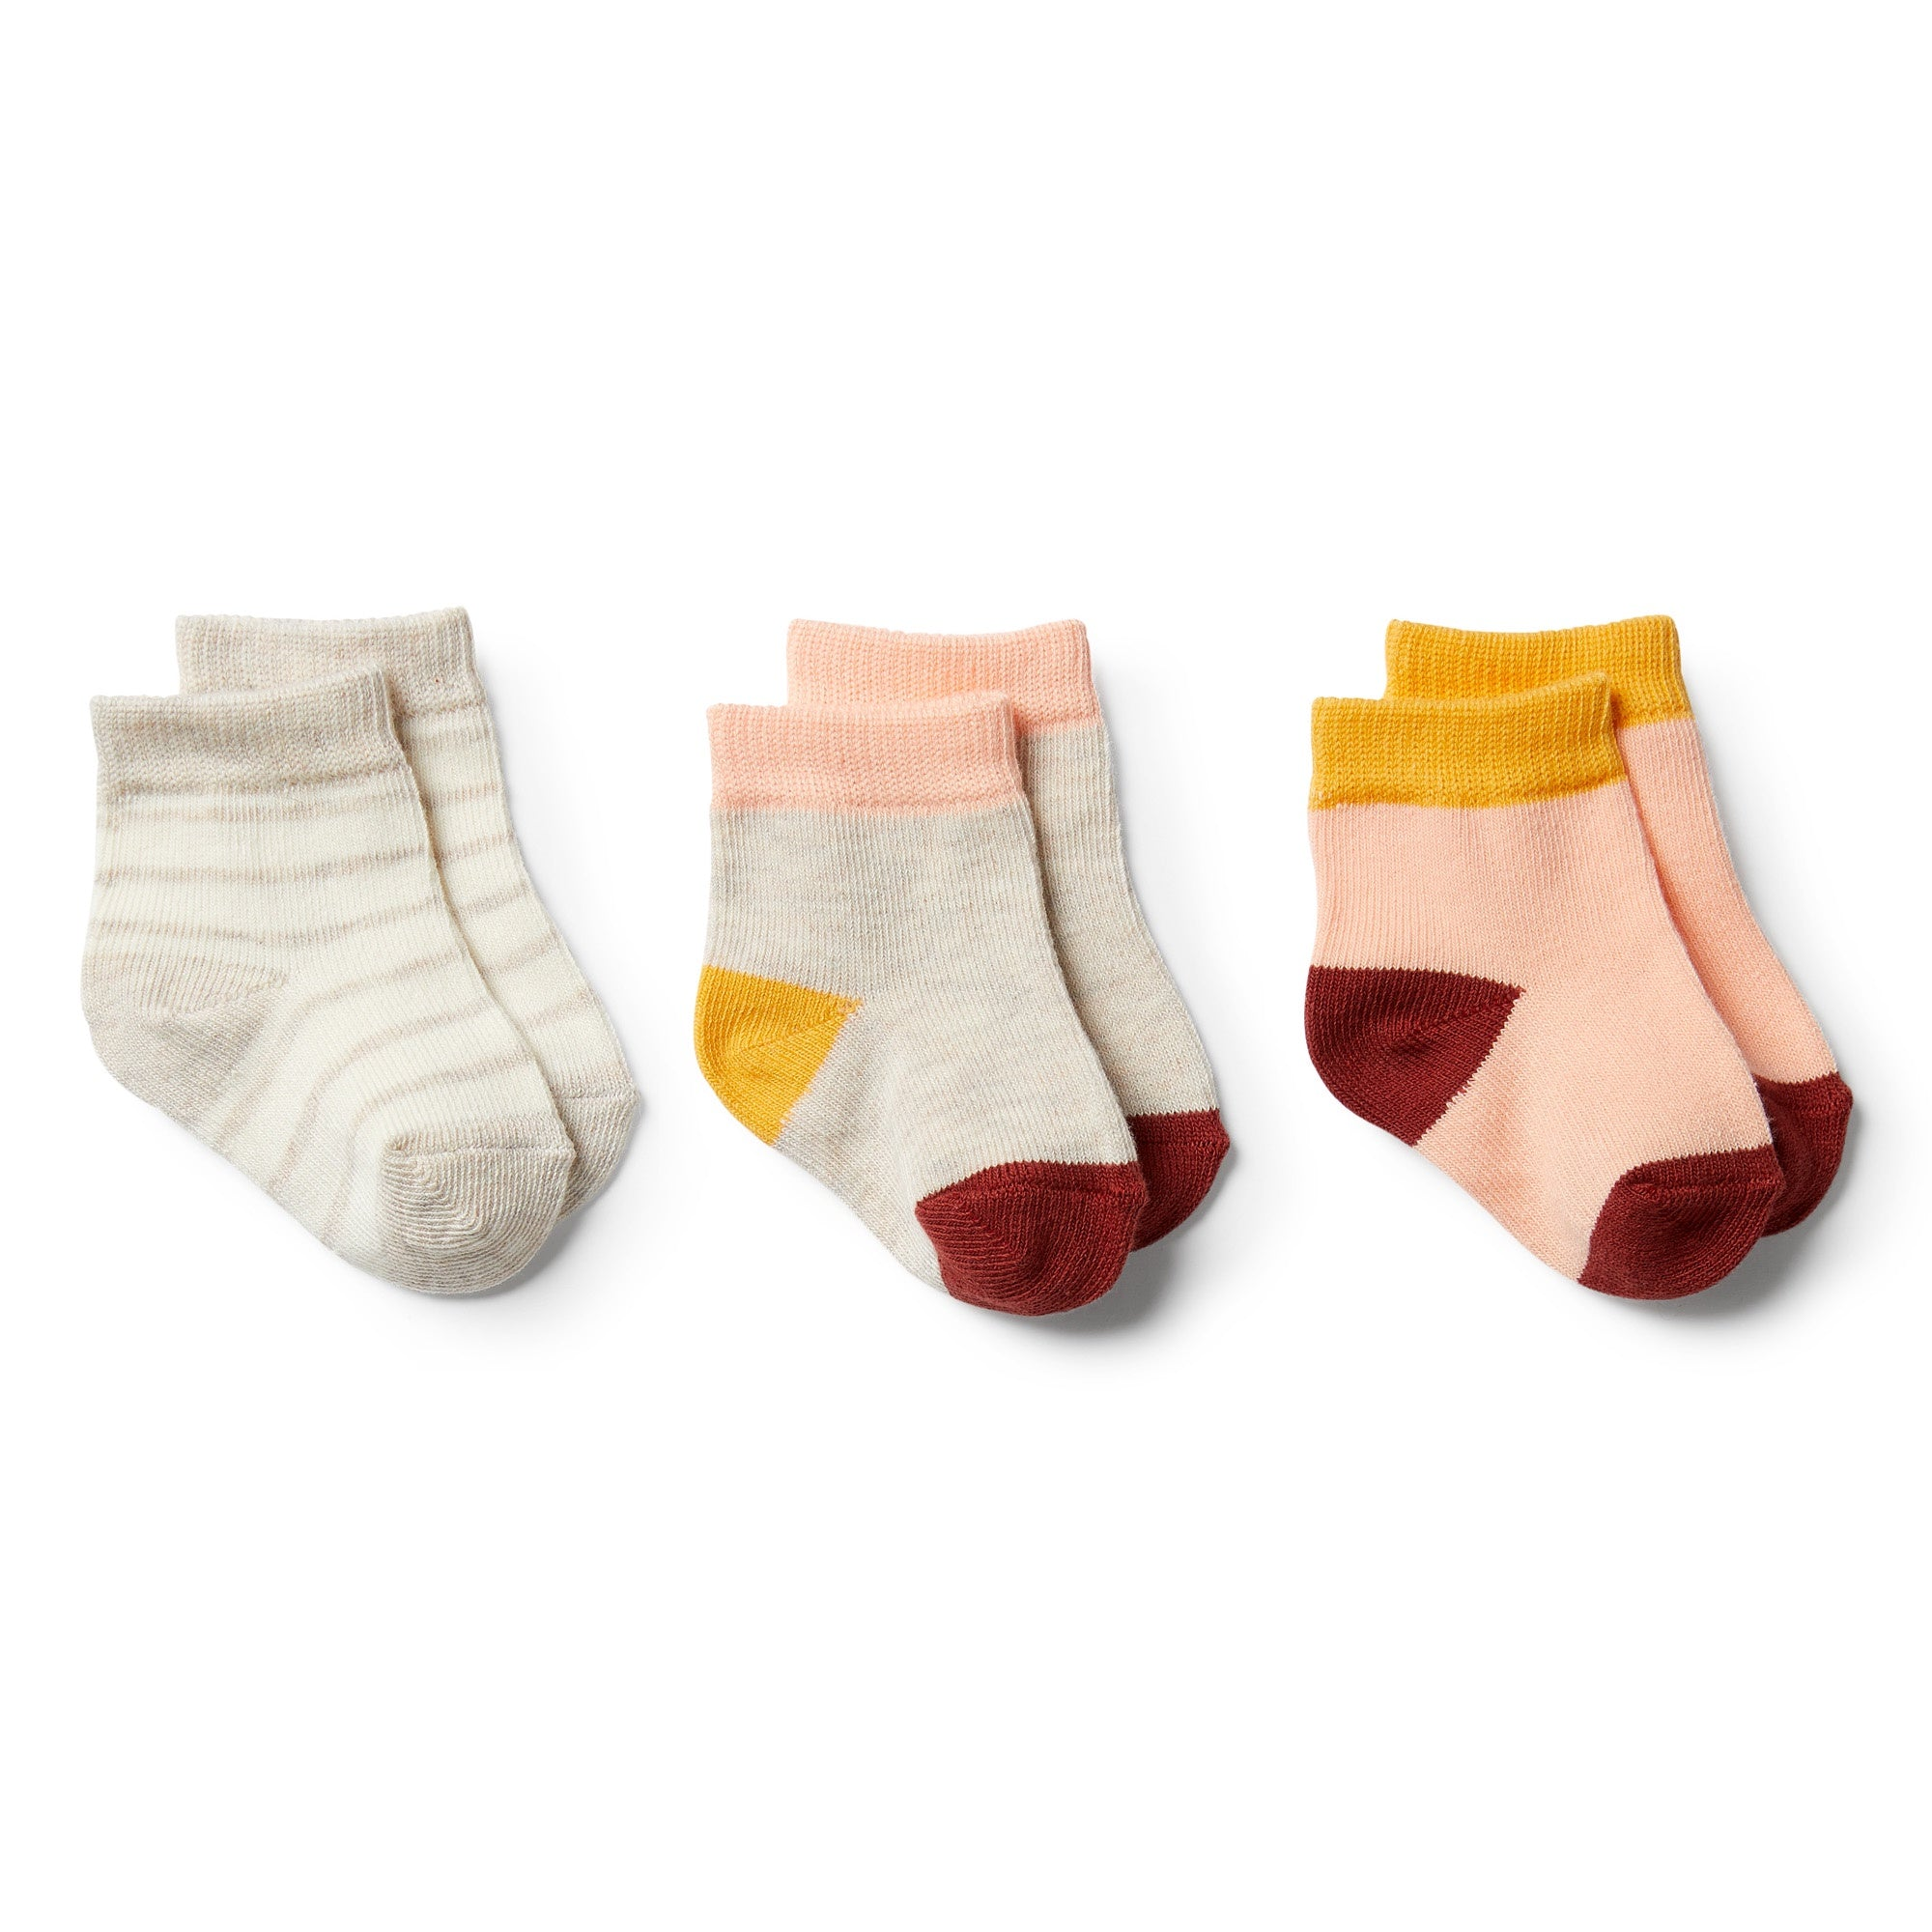 Wilson & Frenchy 3pk Baby Socks Peachy, Chilli, Golden Apricot